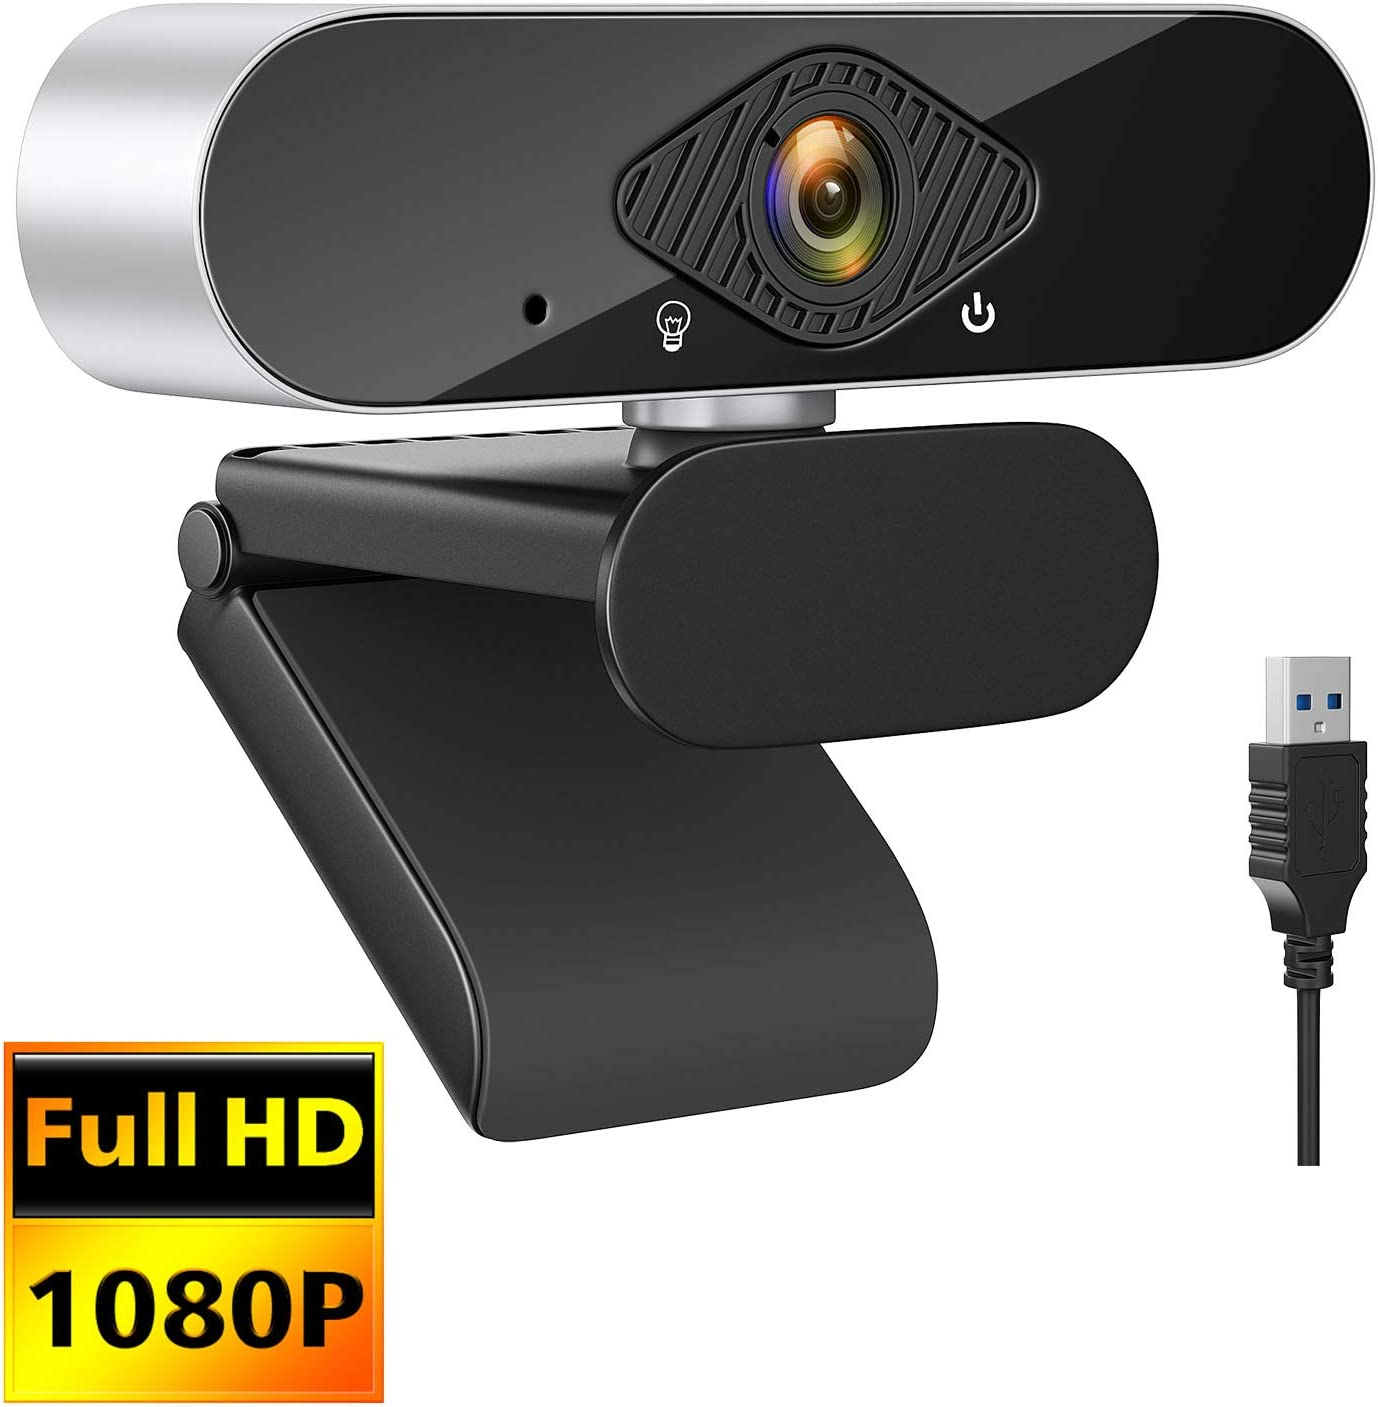 1080P Webcam with Microphone,HD USB Streaming Webcam for Desktop PC Computer Web Camera with 120-Degree Wide View Angle,Plug and Play Desktop Webcam for Video Calling Recording Conferencing,Gaming